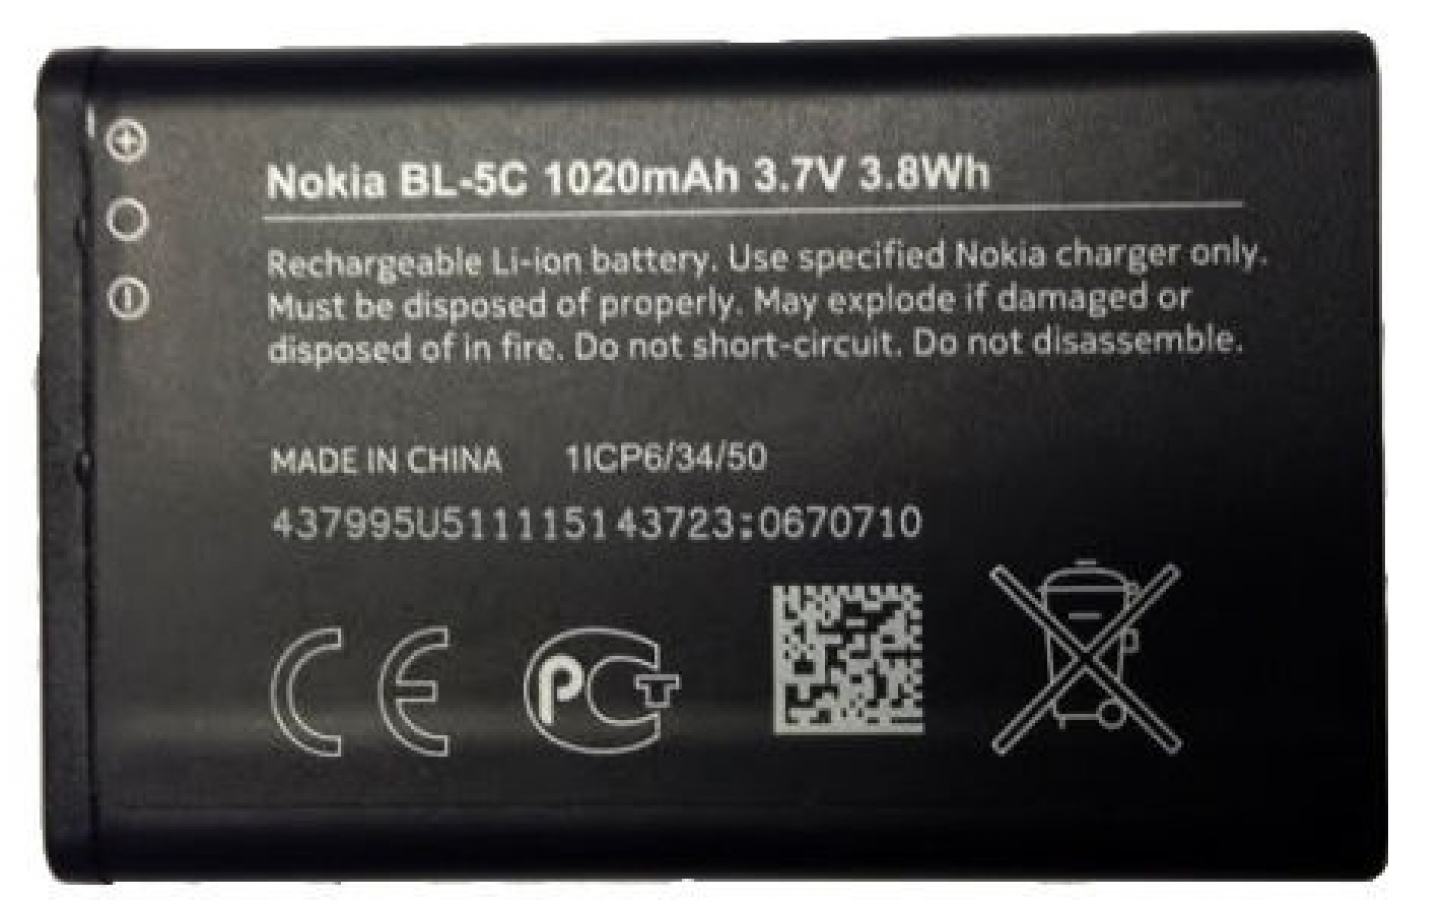 Battery Nokia Bl 5c New Version Mobile Phone Batteries Baterai Bl5c Bl4c Image 1image 2image 3